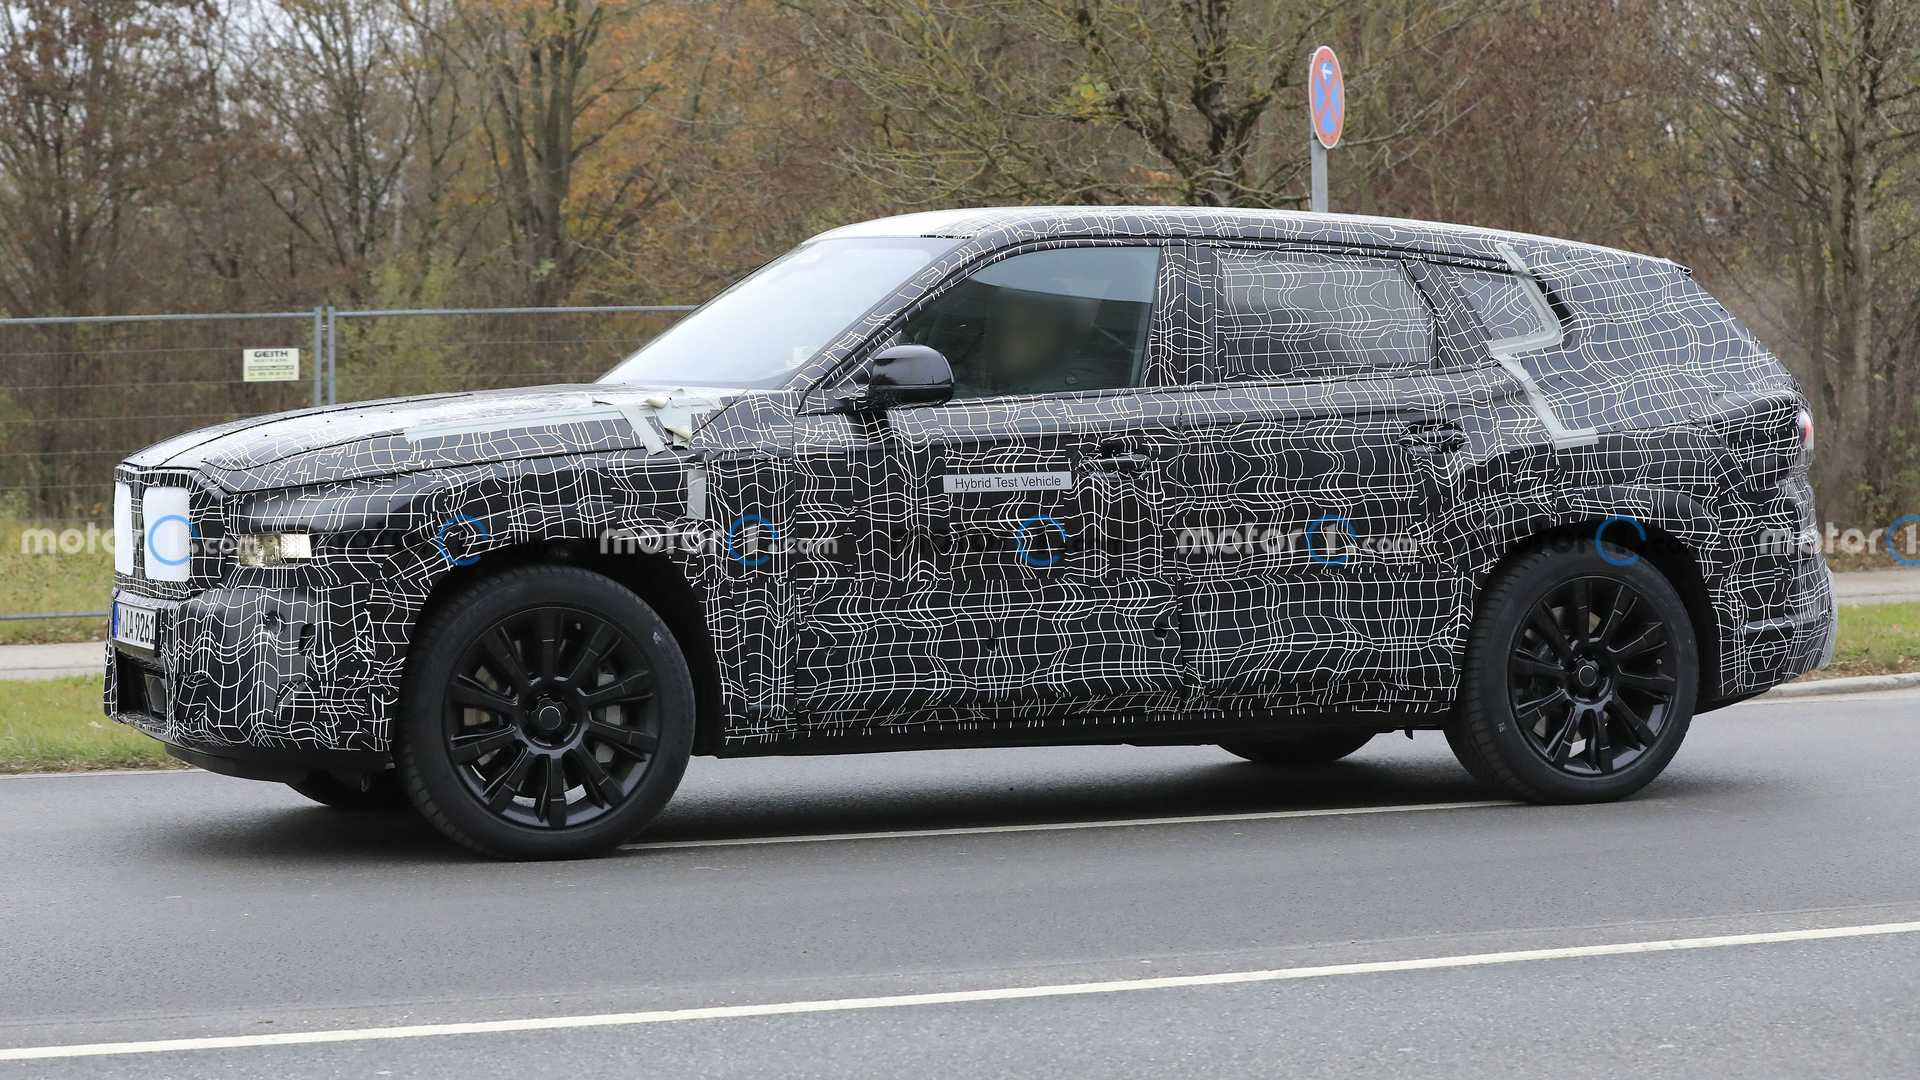 BMW X8 Spied Hiding What Seems To Be An Unconventional Design